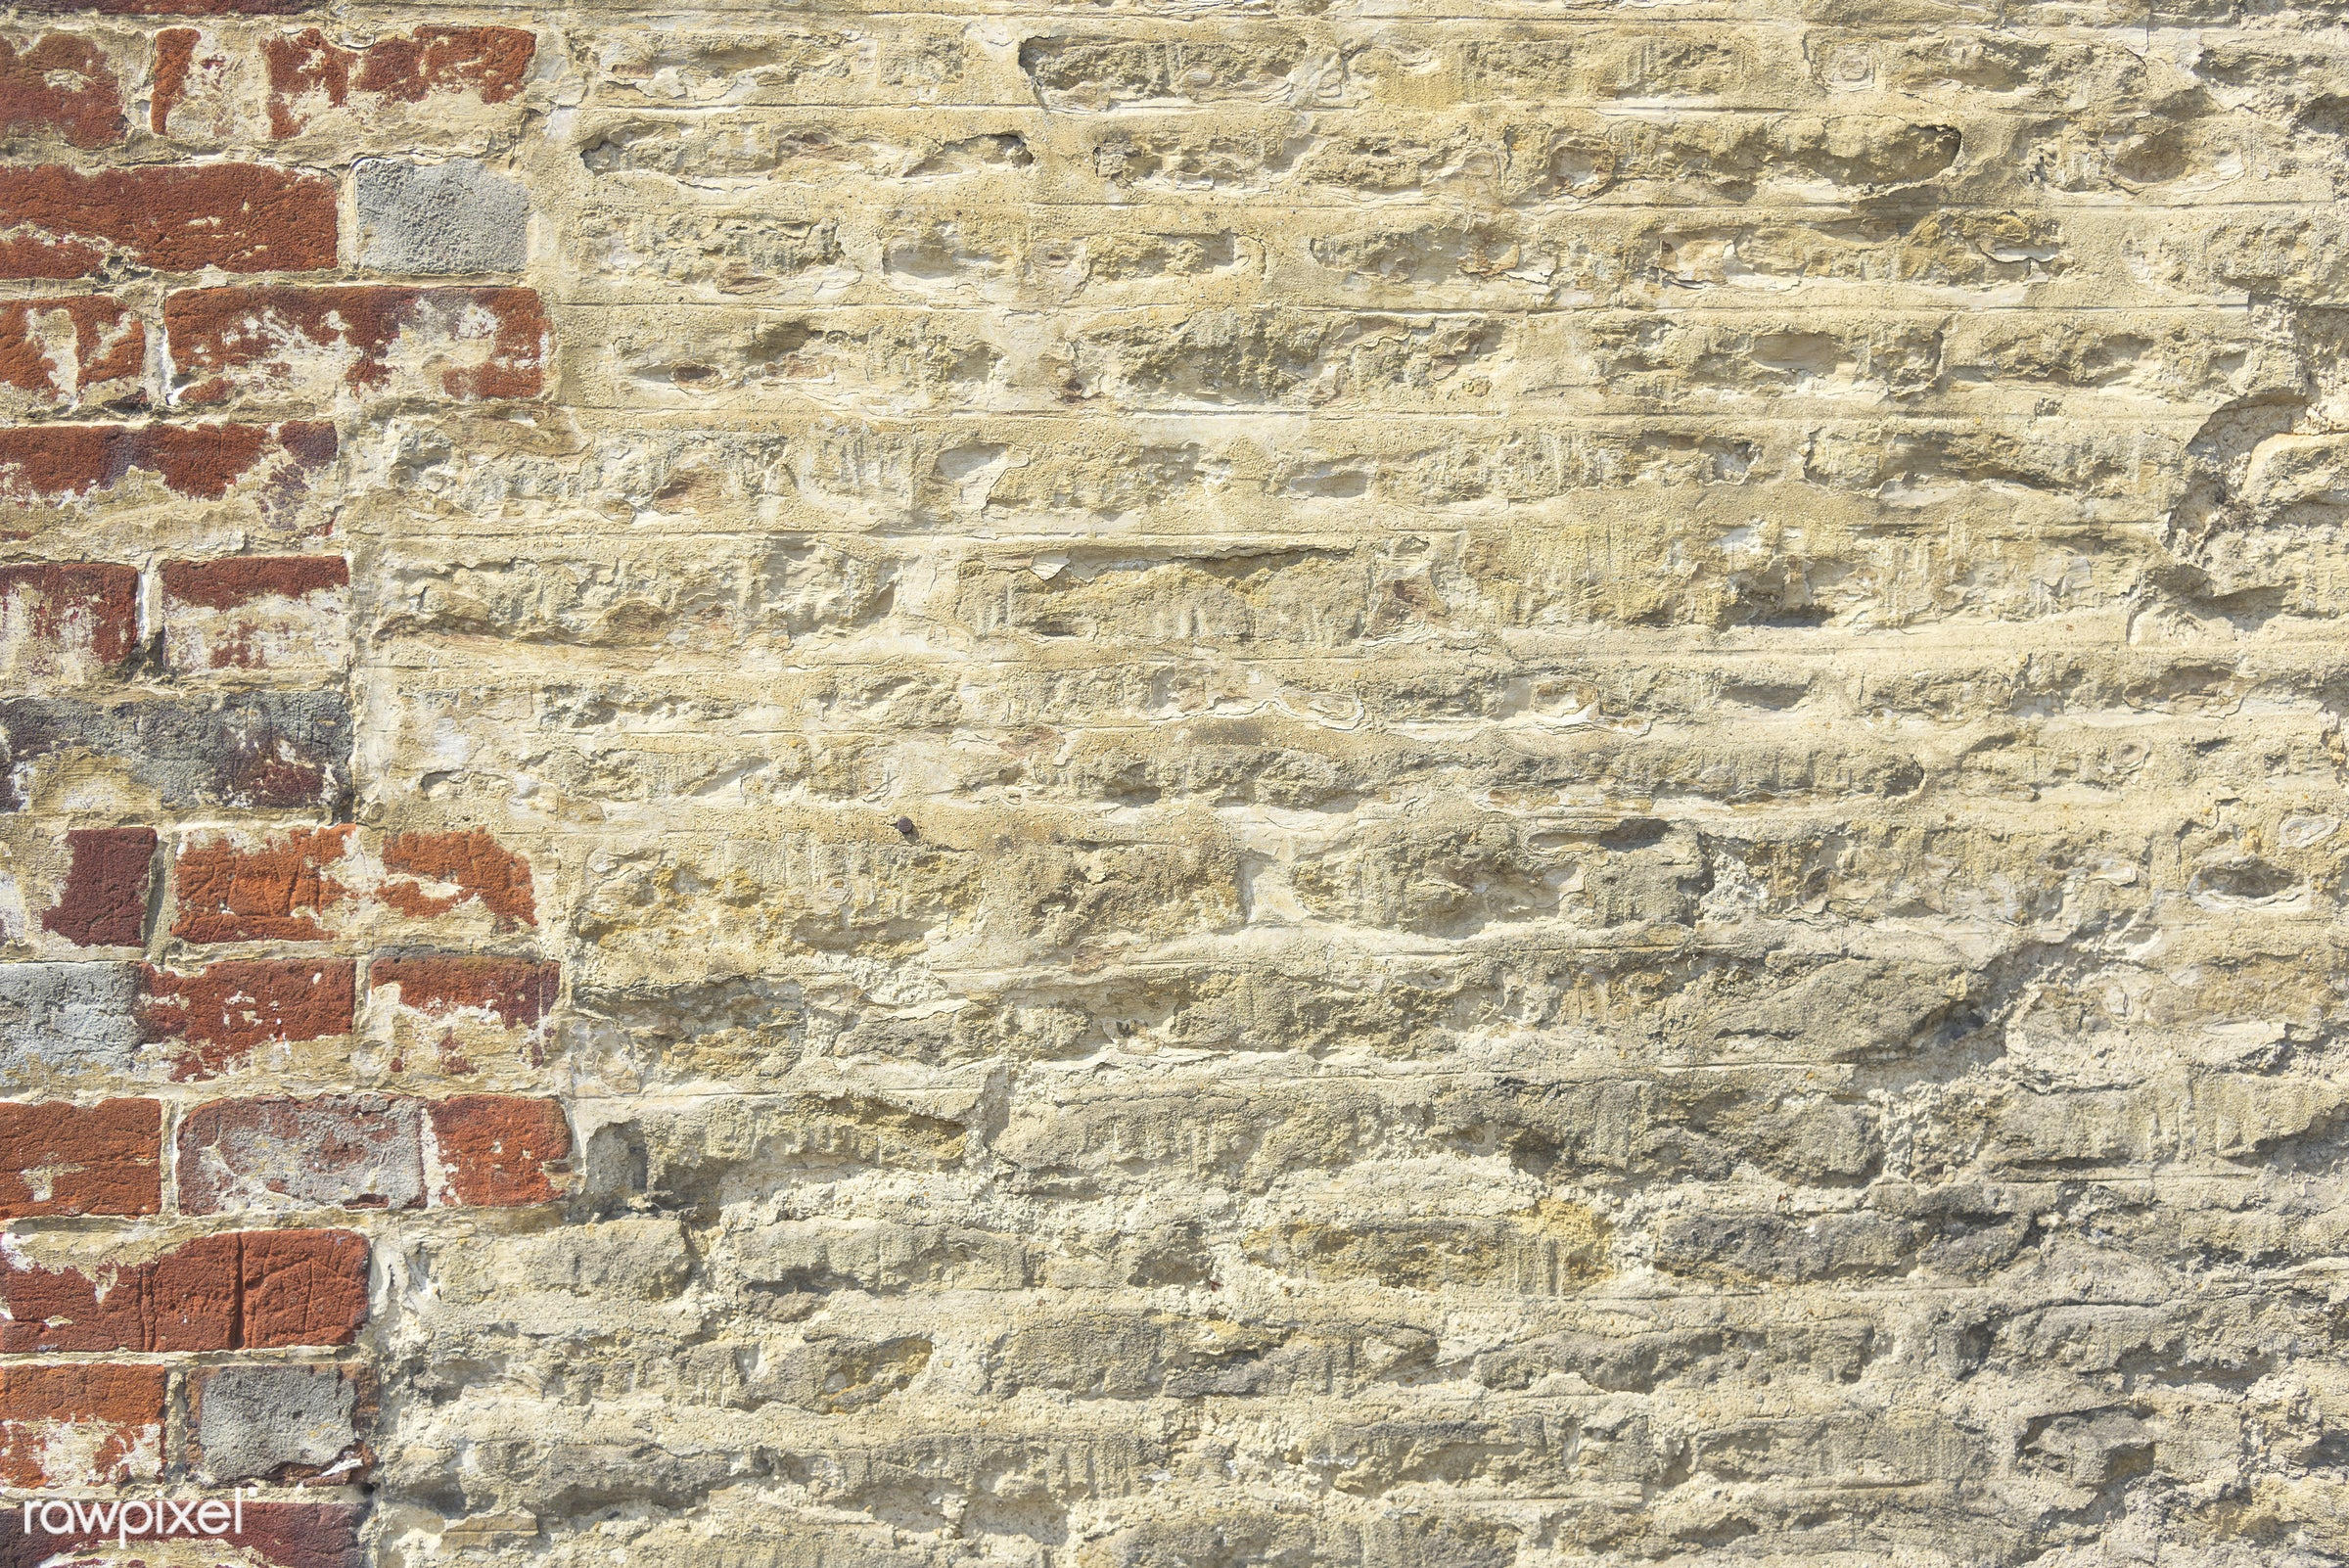 aged, aging, antique, architectural, architecture, background, blanket, block, brick, brickwall, brickwork, building, cement...